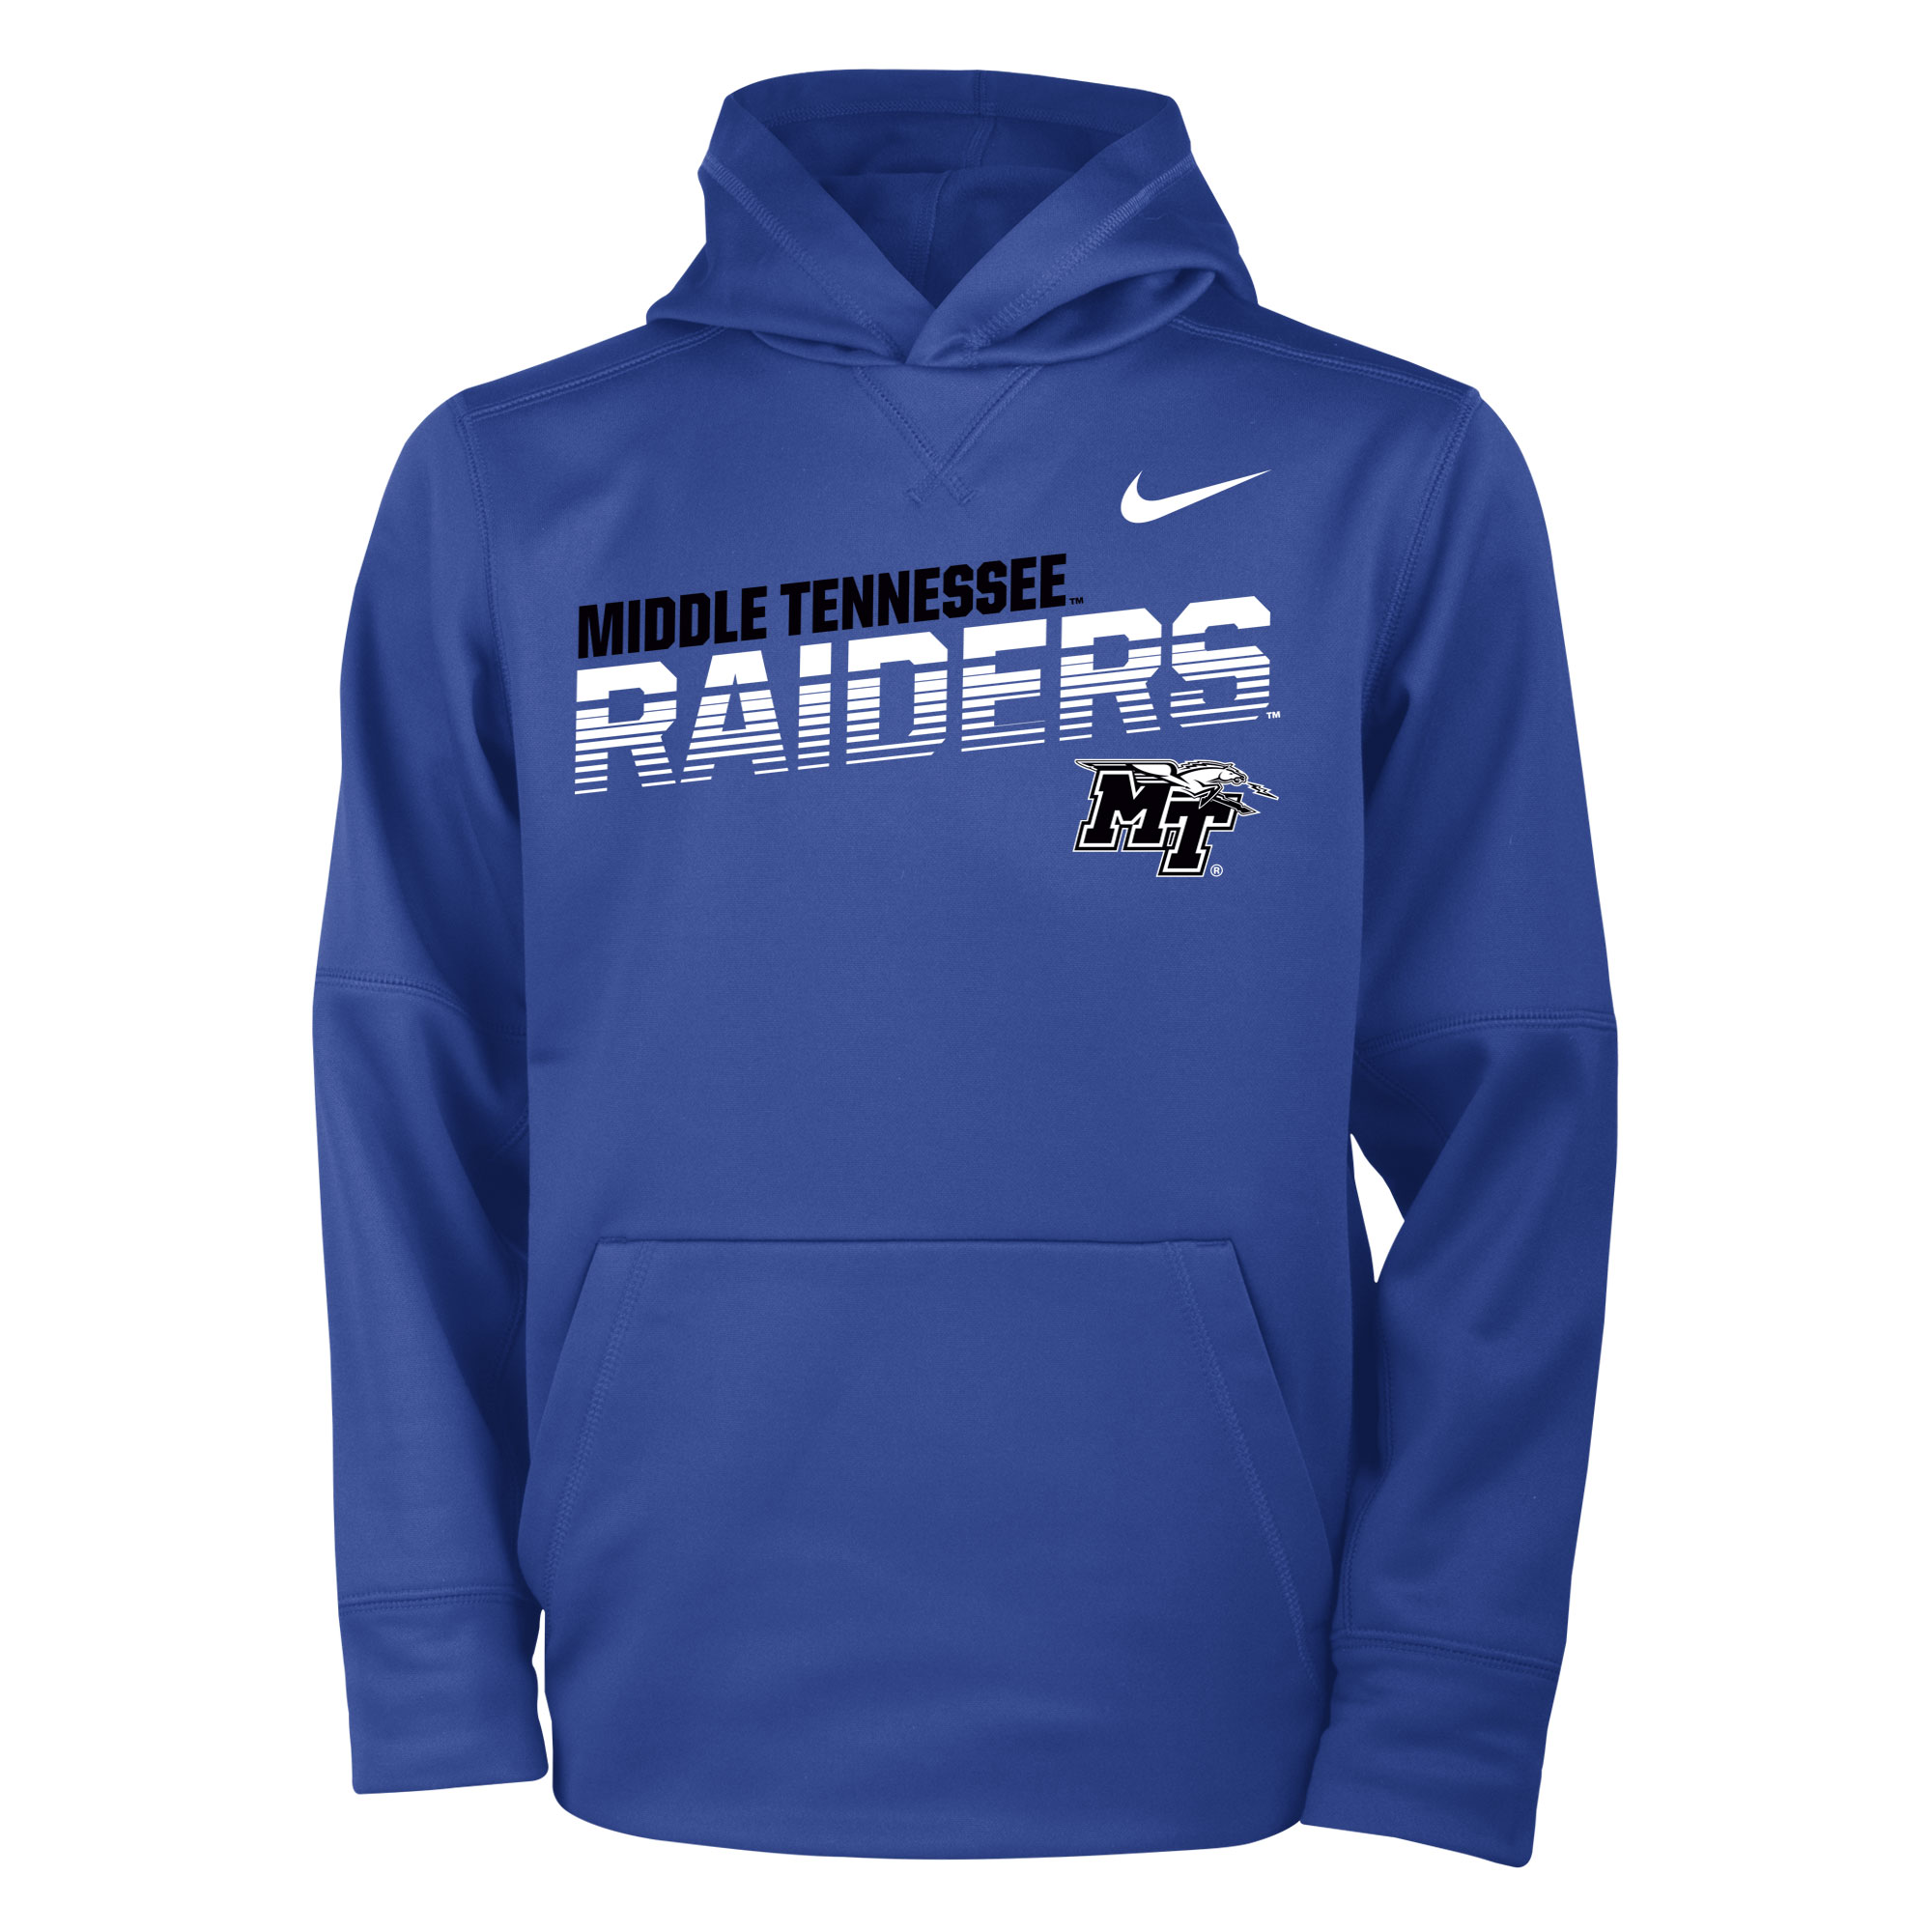 Youth Middle Tennessee Raiders Sideline Therma Hoodie